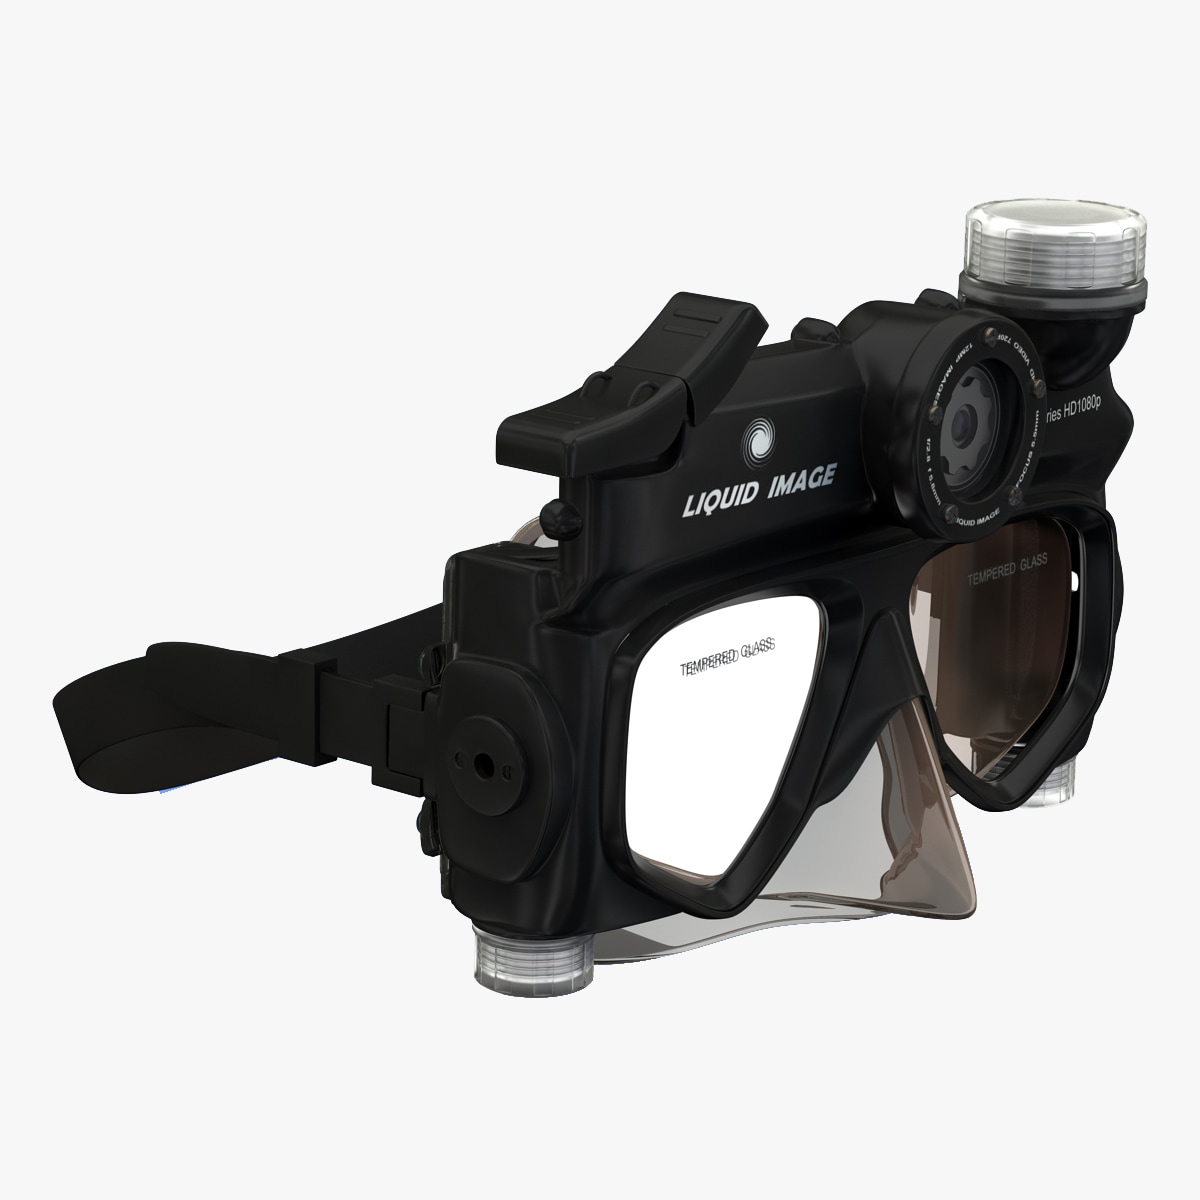 Camera_Mask_Scuba_Series_HD_1080p_000.jpg